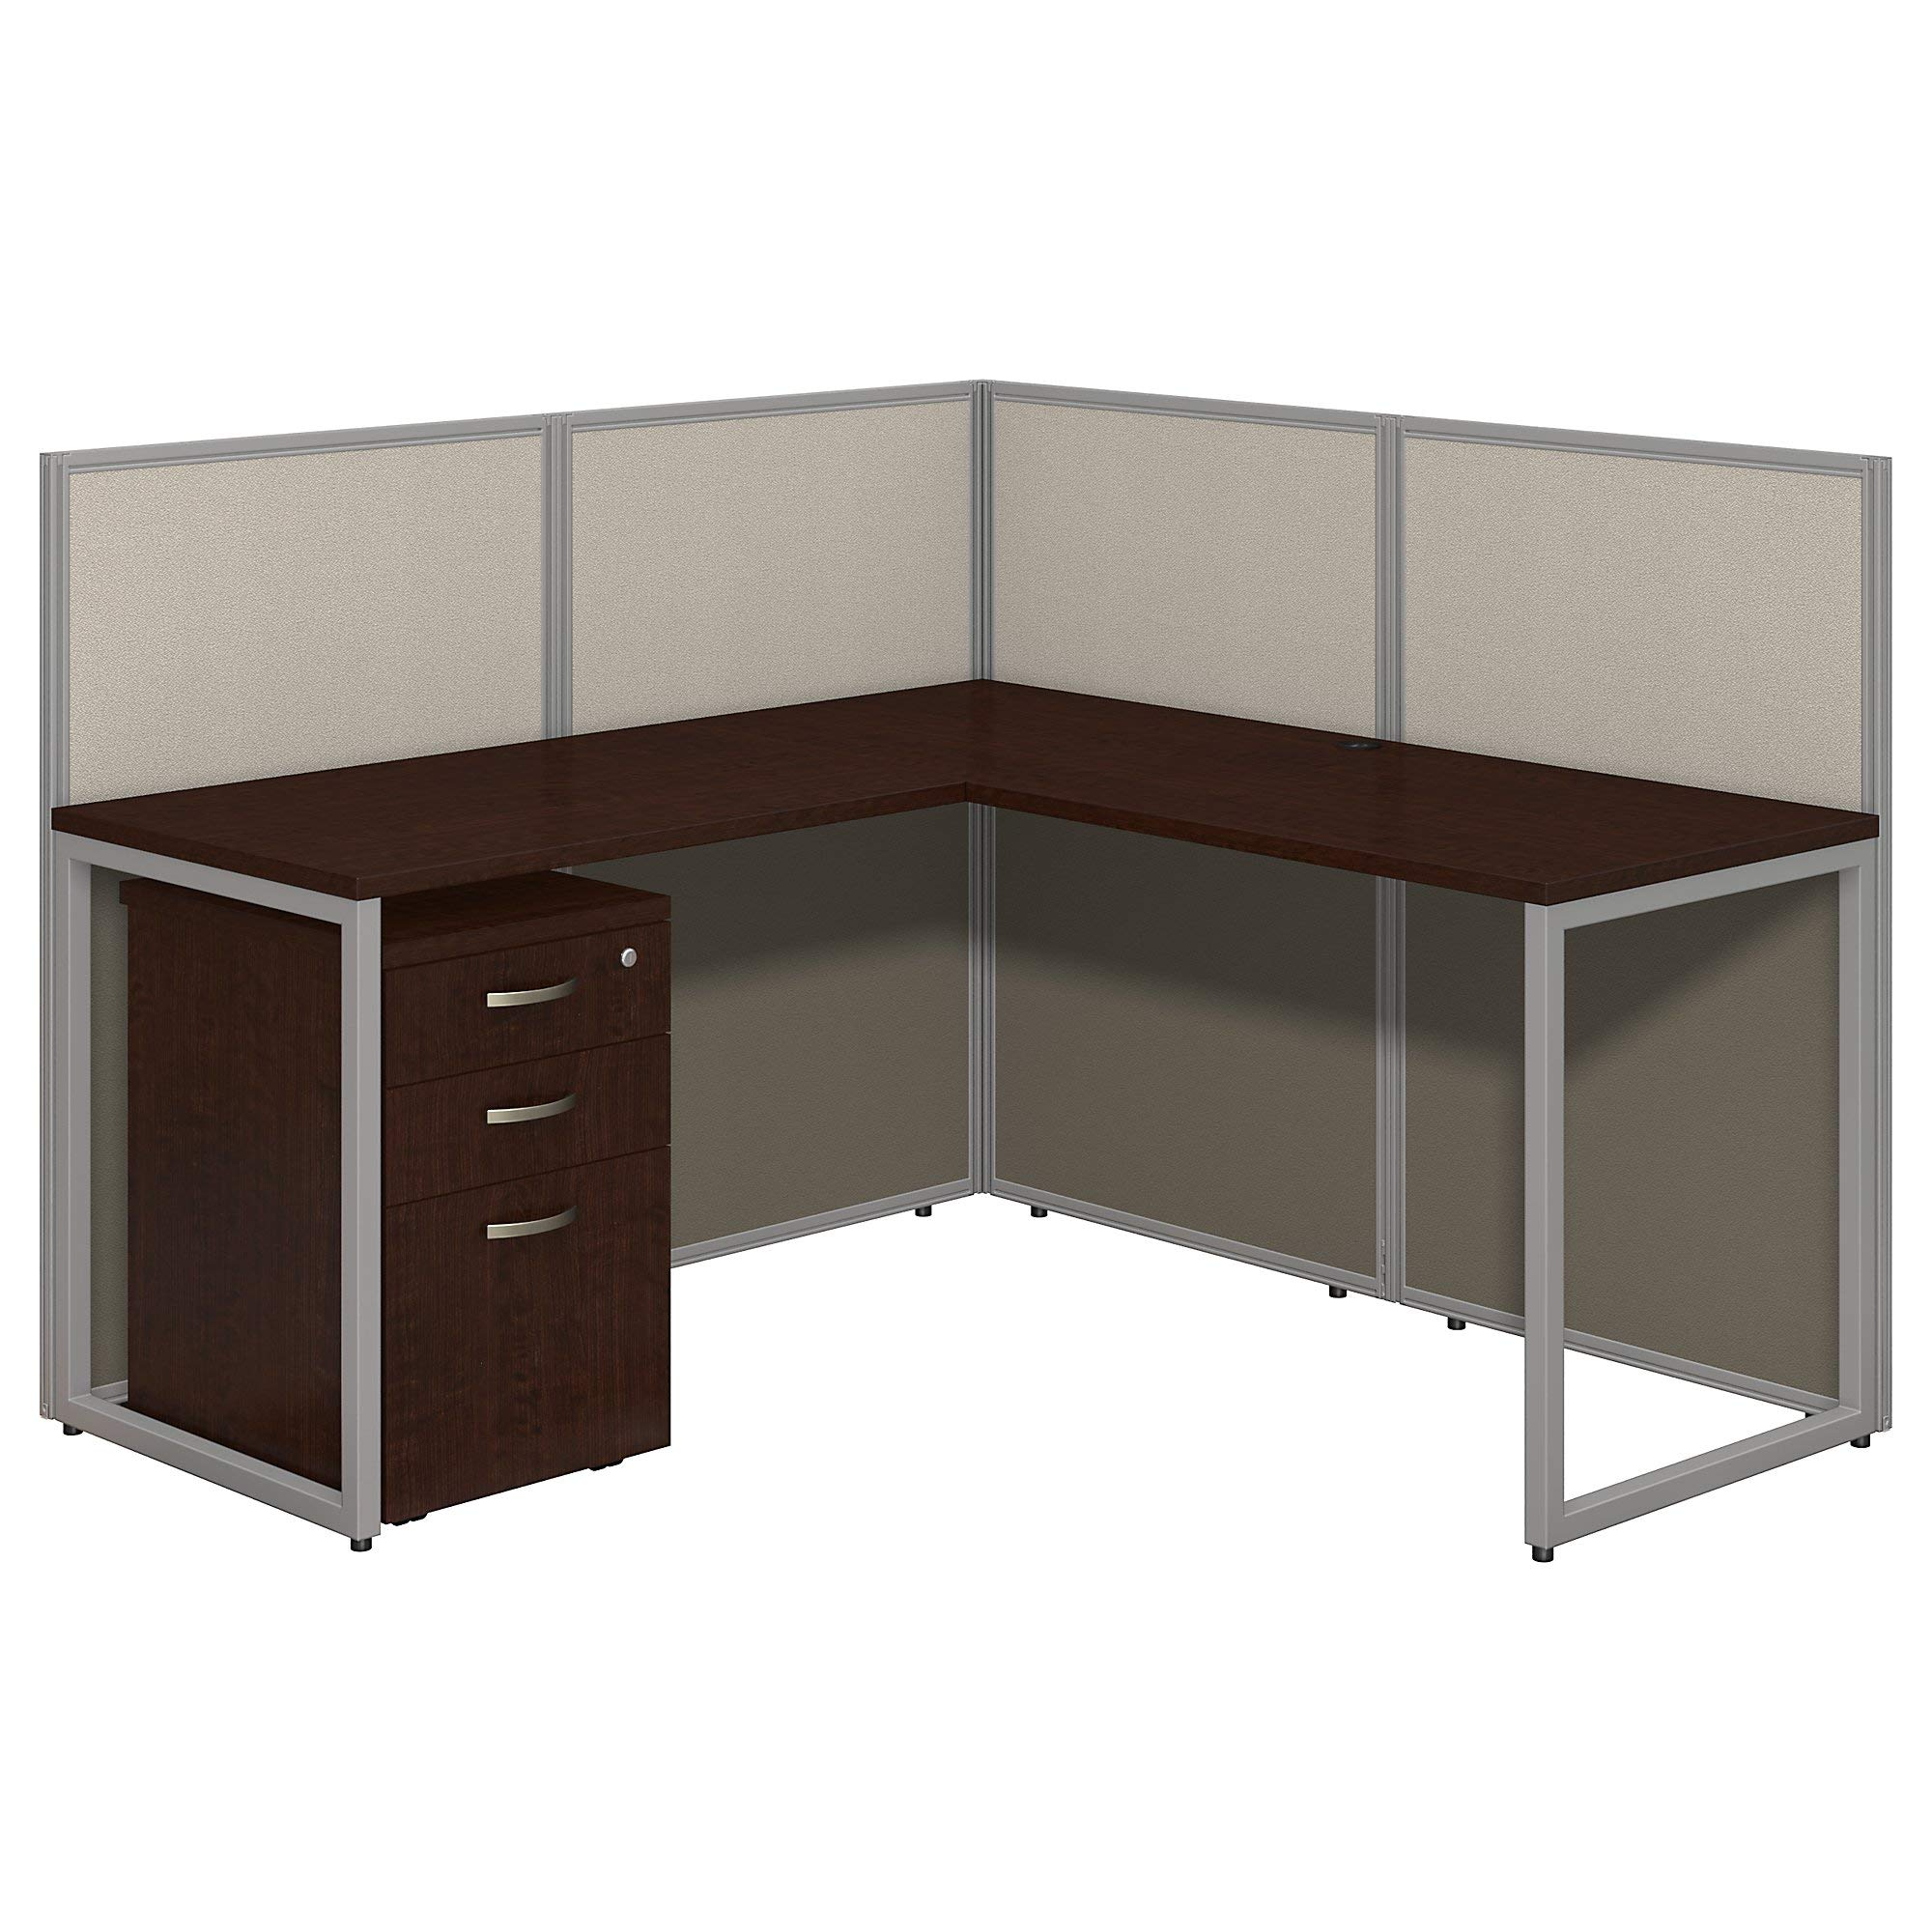 Bush Business Furniture Easy Office 60W L Shaped Desk Open Office with Mobile File Cabinet in Mocha Cherry by Bush Business Furniture